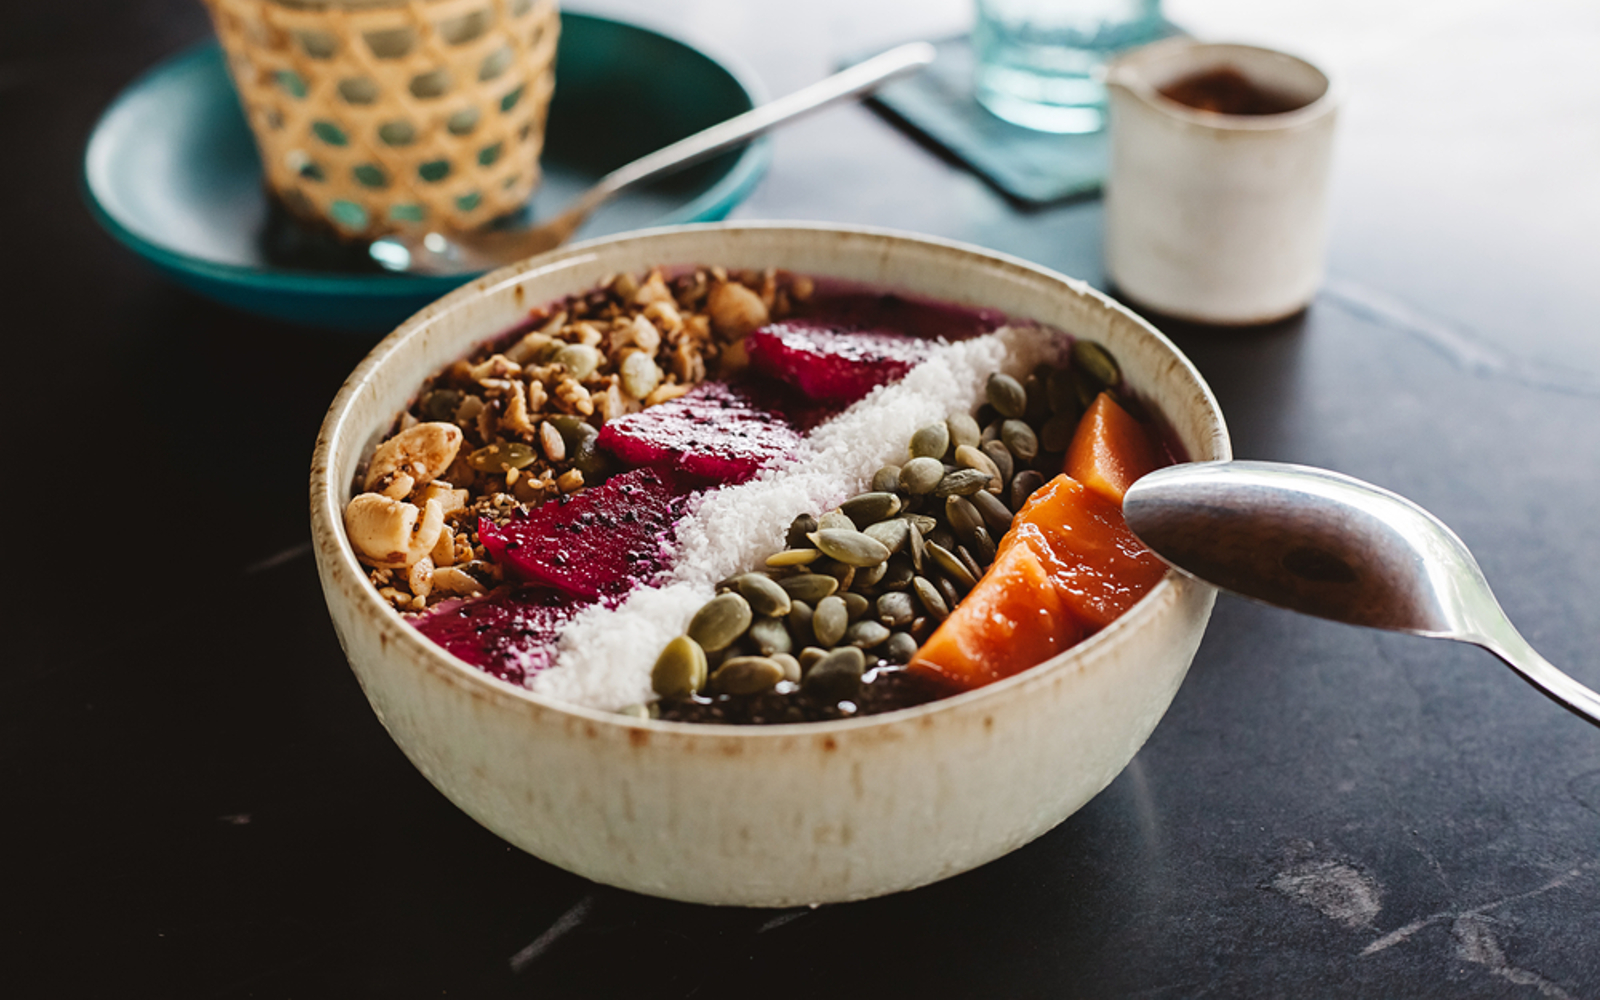 Vegan Acai bowl with fruit, coconut, and chia seeds